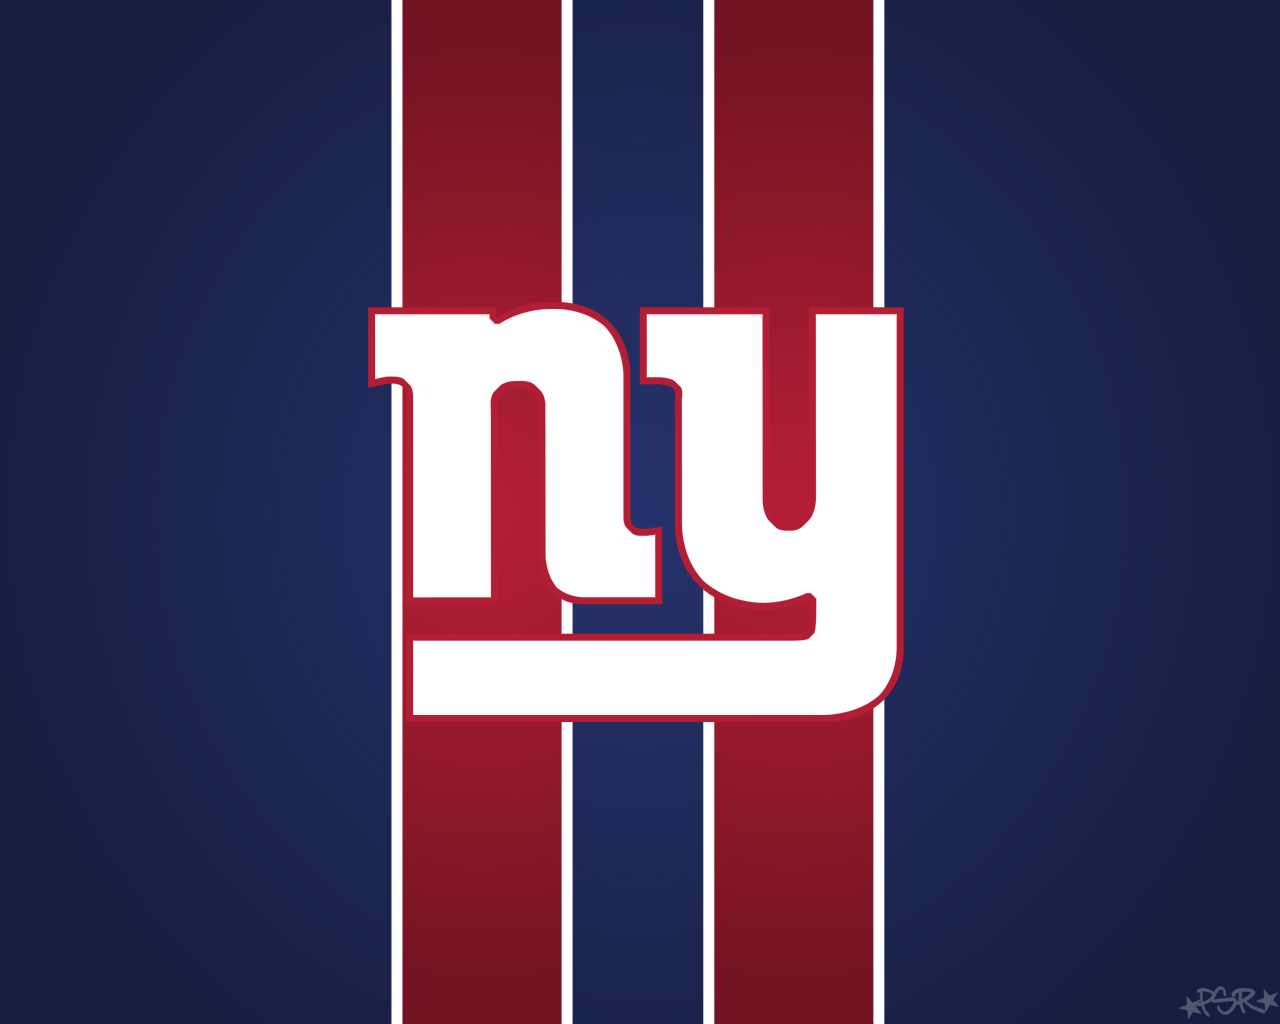 New York Giants wallpaper background